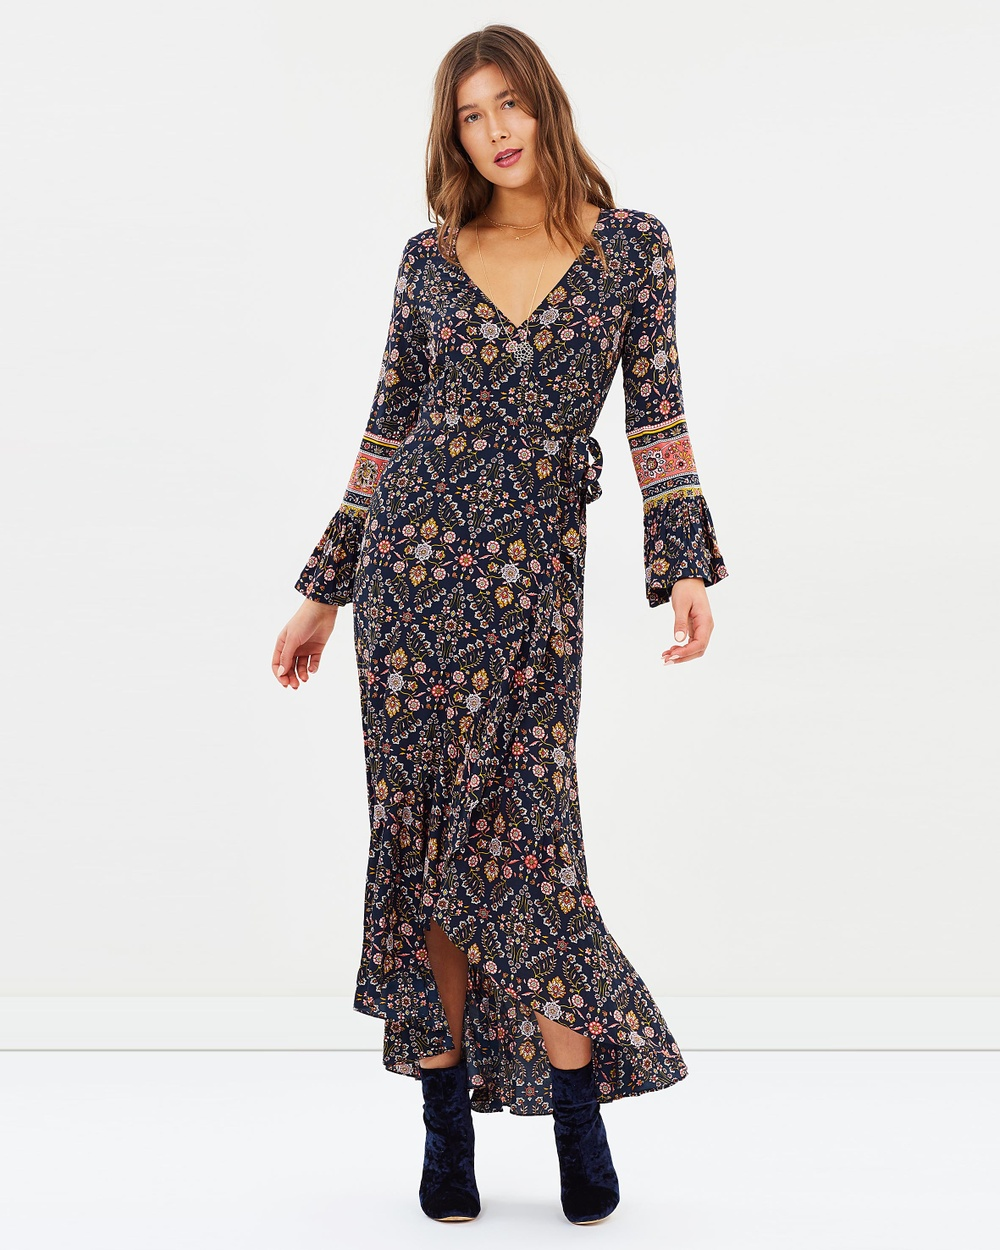 Tigerlily Zareen Maxi Dress Dresses Indigo Zareen Maxi Dress